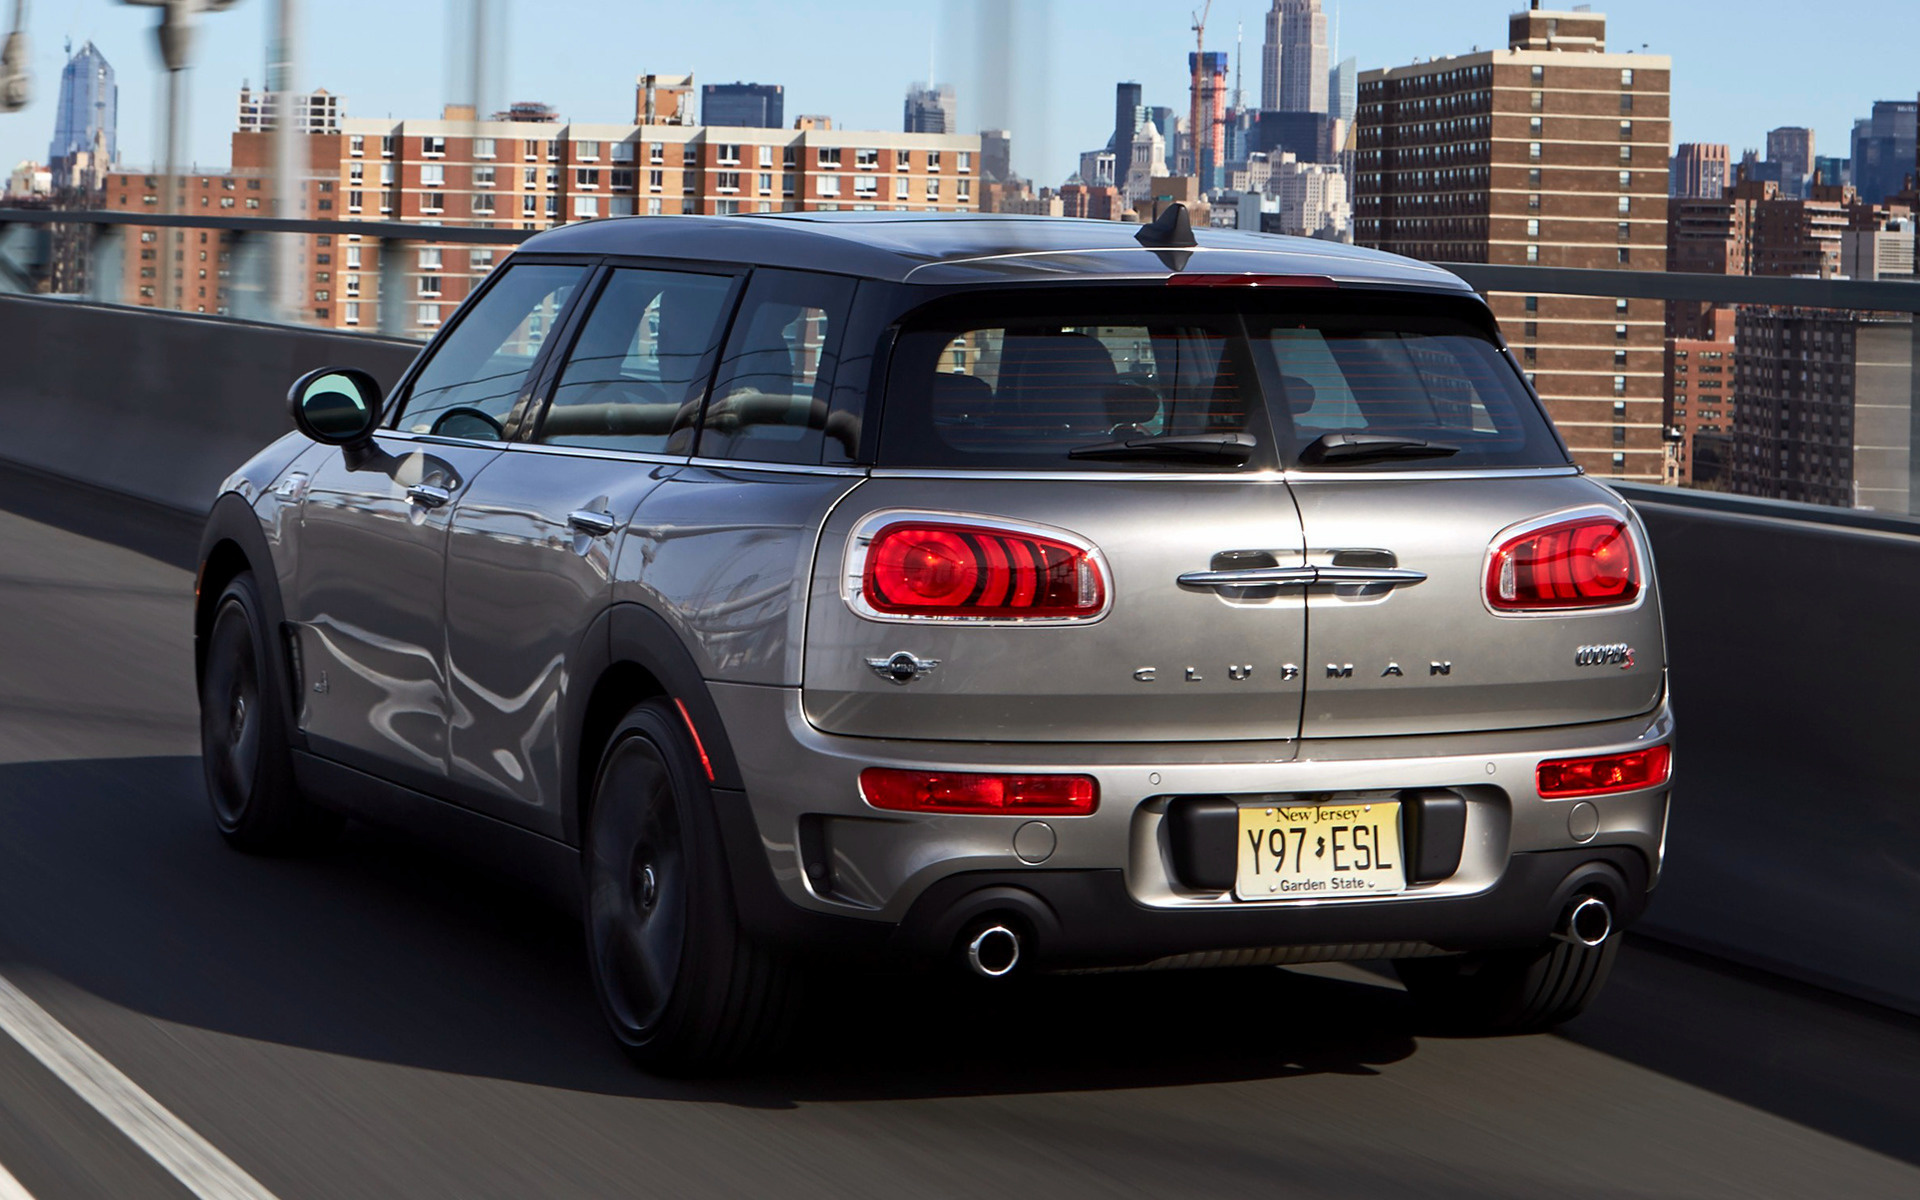 2017 mini cooper s clubman (us) - wallpapers and hd images | car pixel